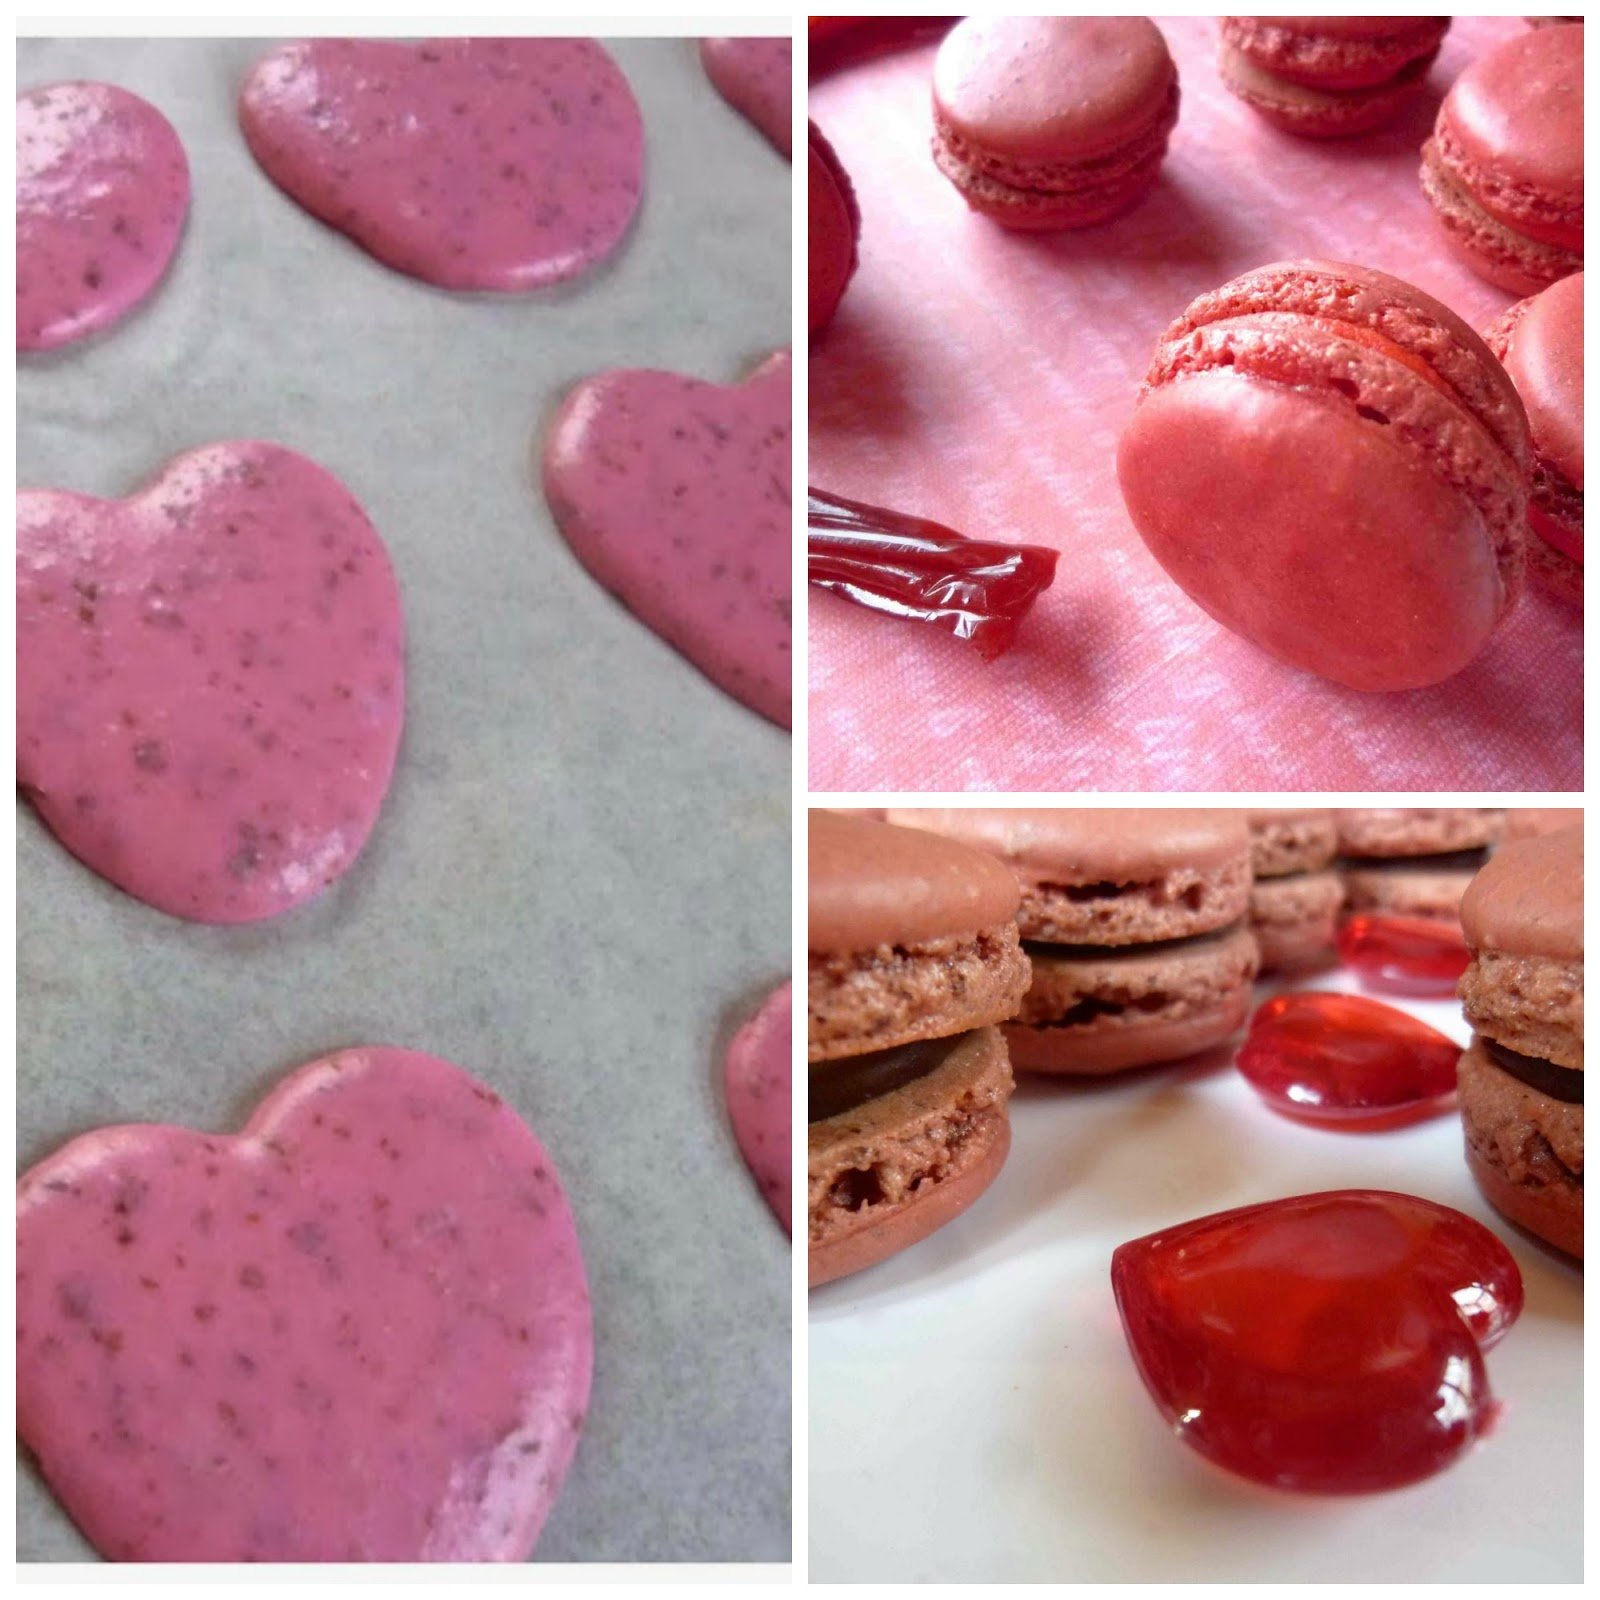 Until Then, In Honor Of Upcoming Valentines Day, Here Is A Round Up Of  Heart Shaped And Valentineu0027s Themed French Macaron Posts And Recipes To  Tide Us Over ...